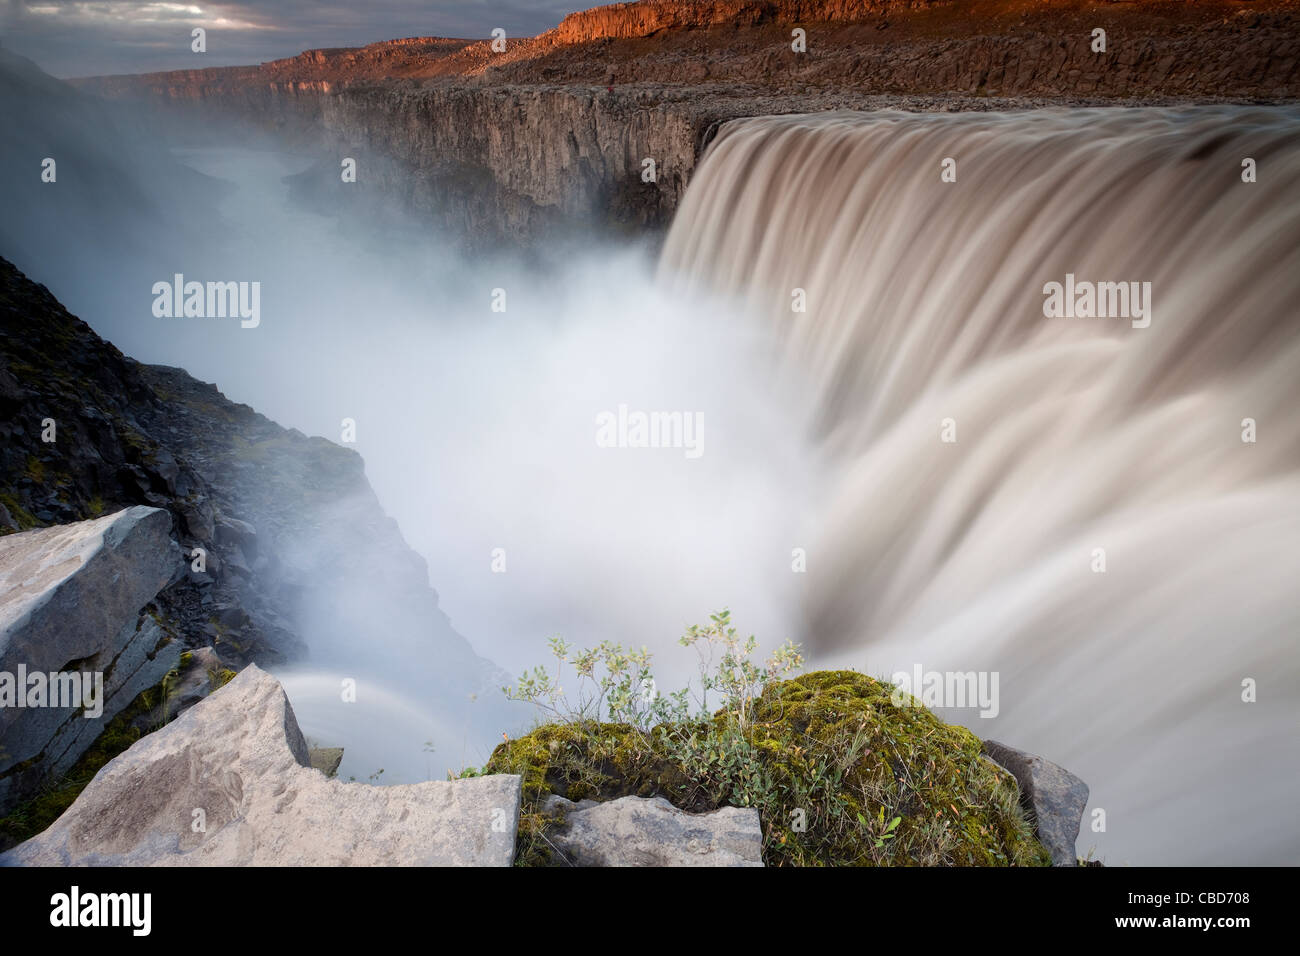 Waterfall over rural landscape - Stock Image